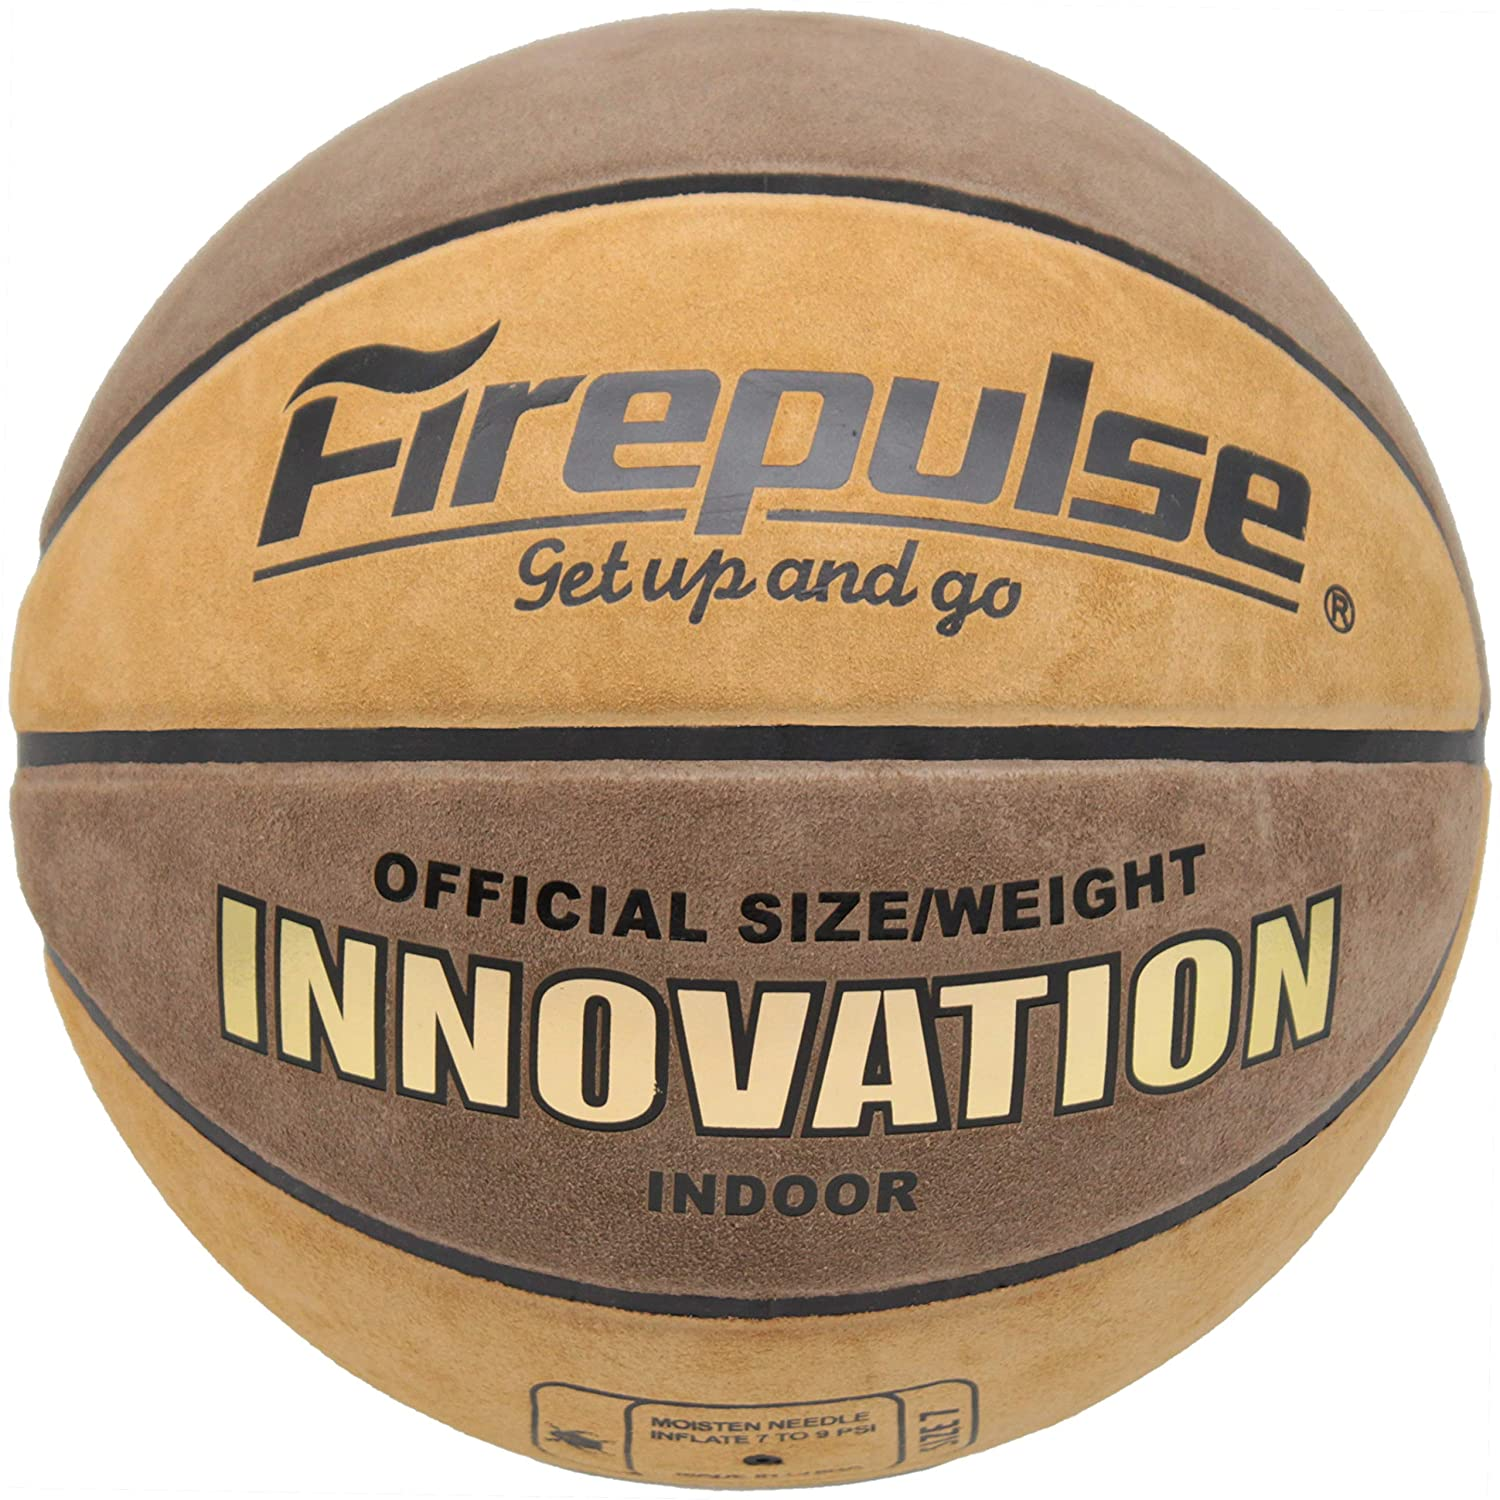 FIREPULSE Innovation Basketball Official Size 7 29.5 Indoor Top Grain Leather Game Basketballs with Free Air Pump,Needles,Basketball Carry Bag